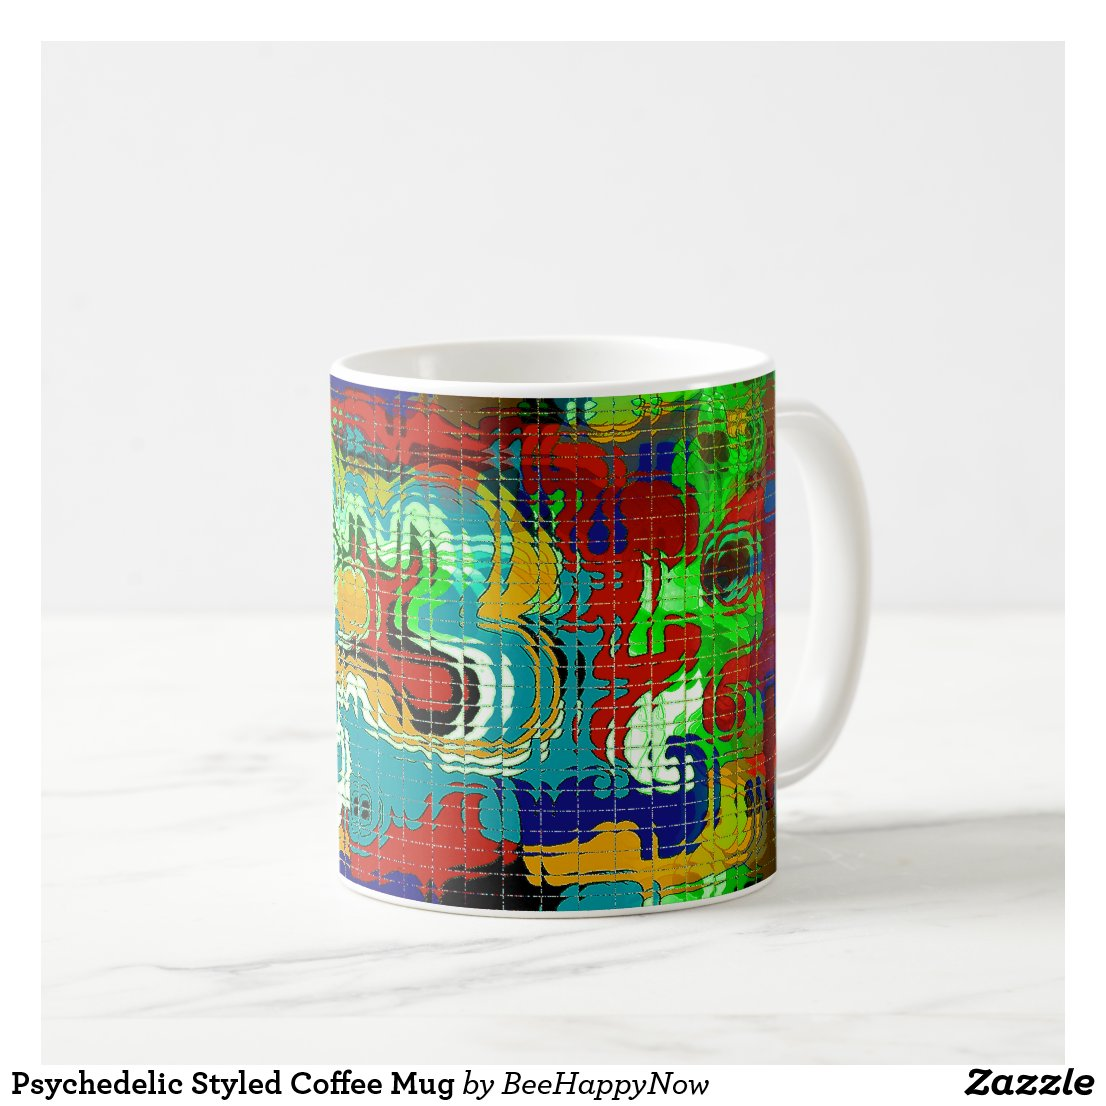 Psychedelic Styled Coffee Mug